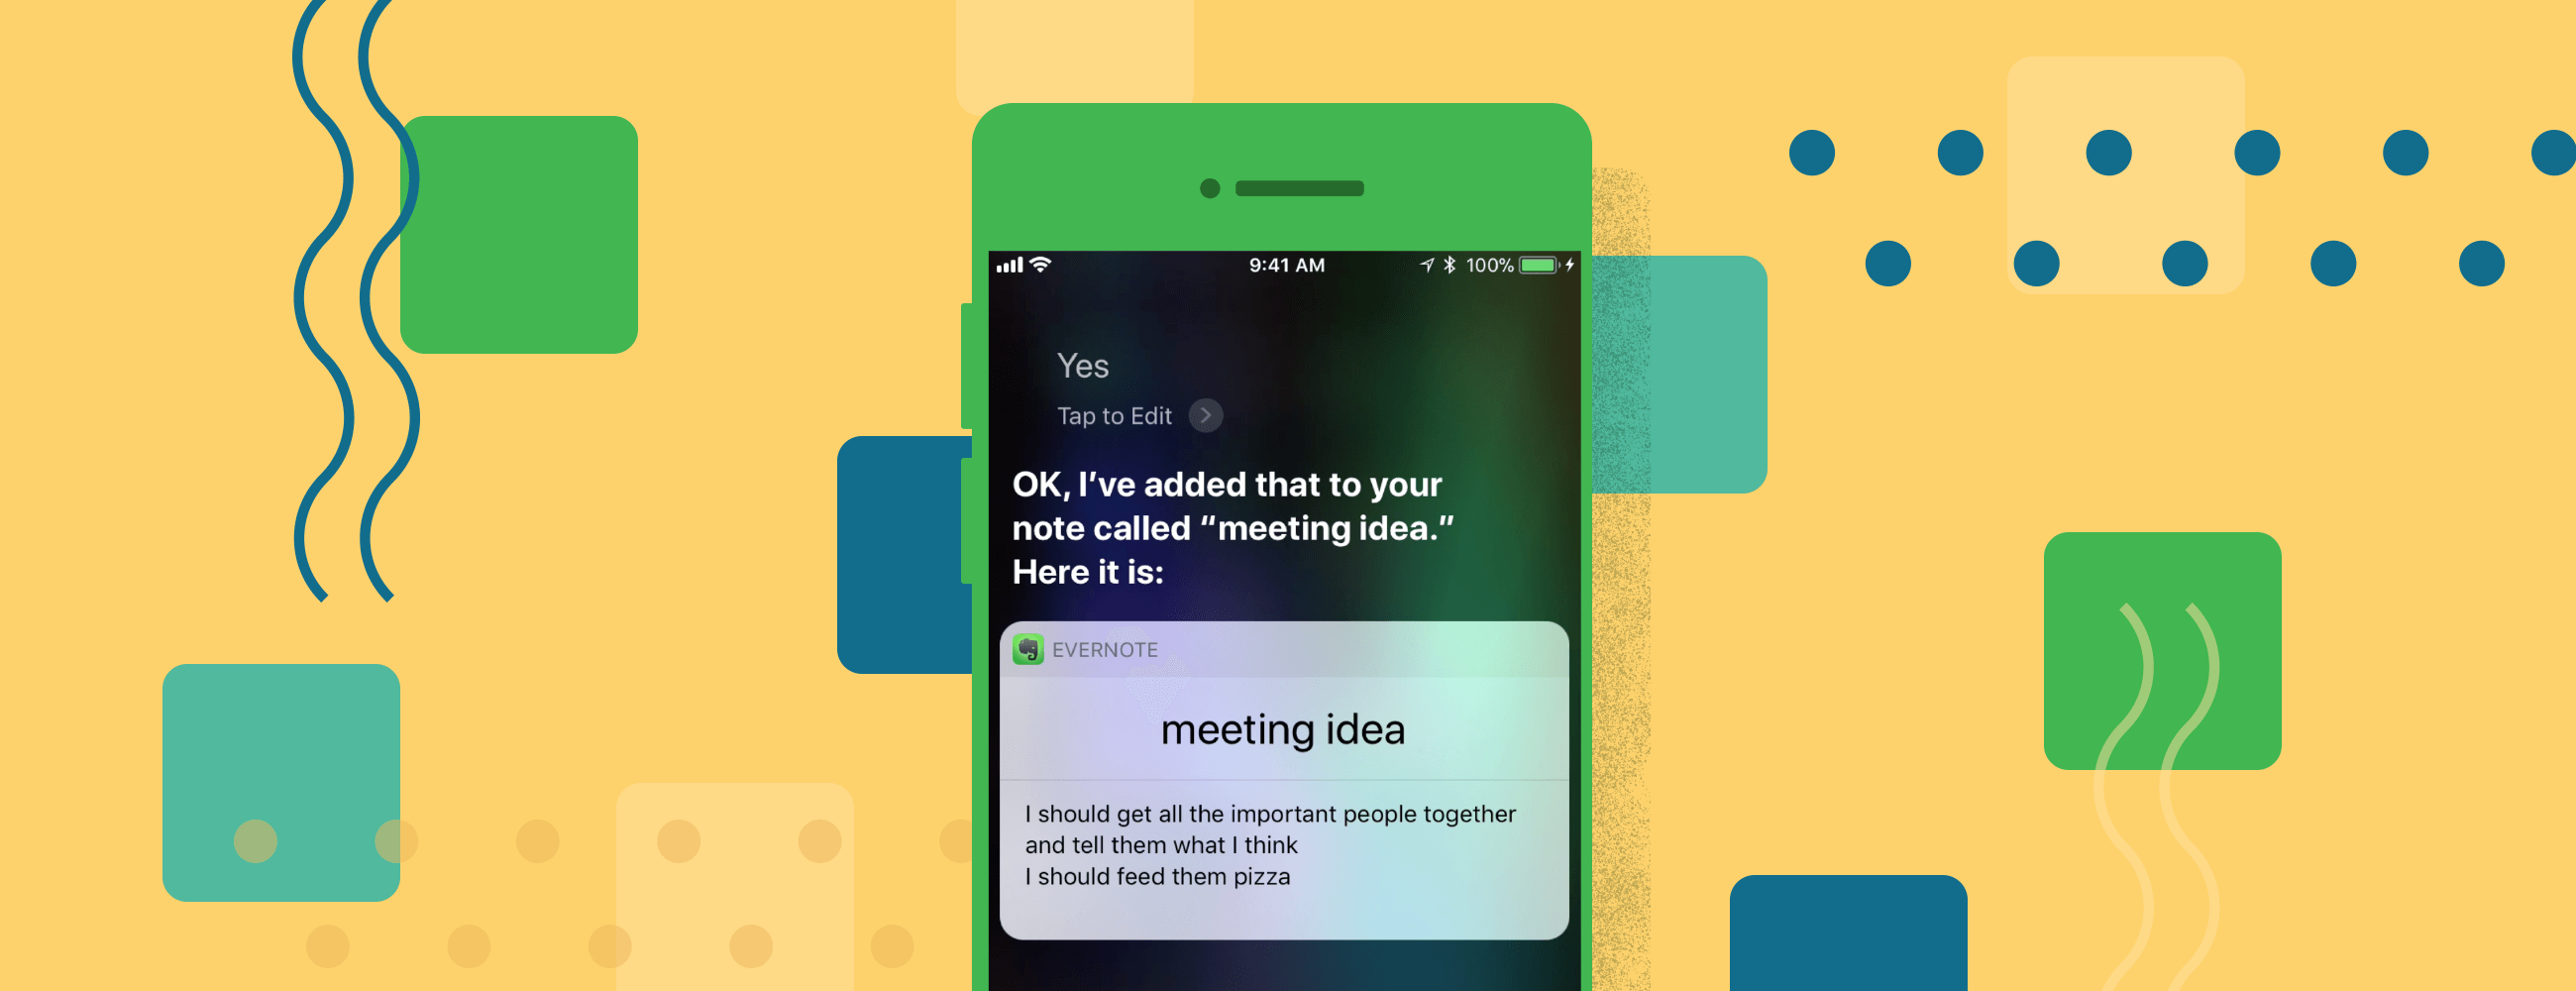 3 iOS Power Moves You Need to Know | Evernote Blog